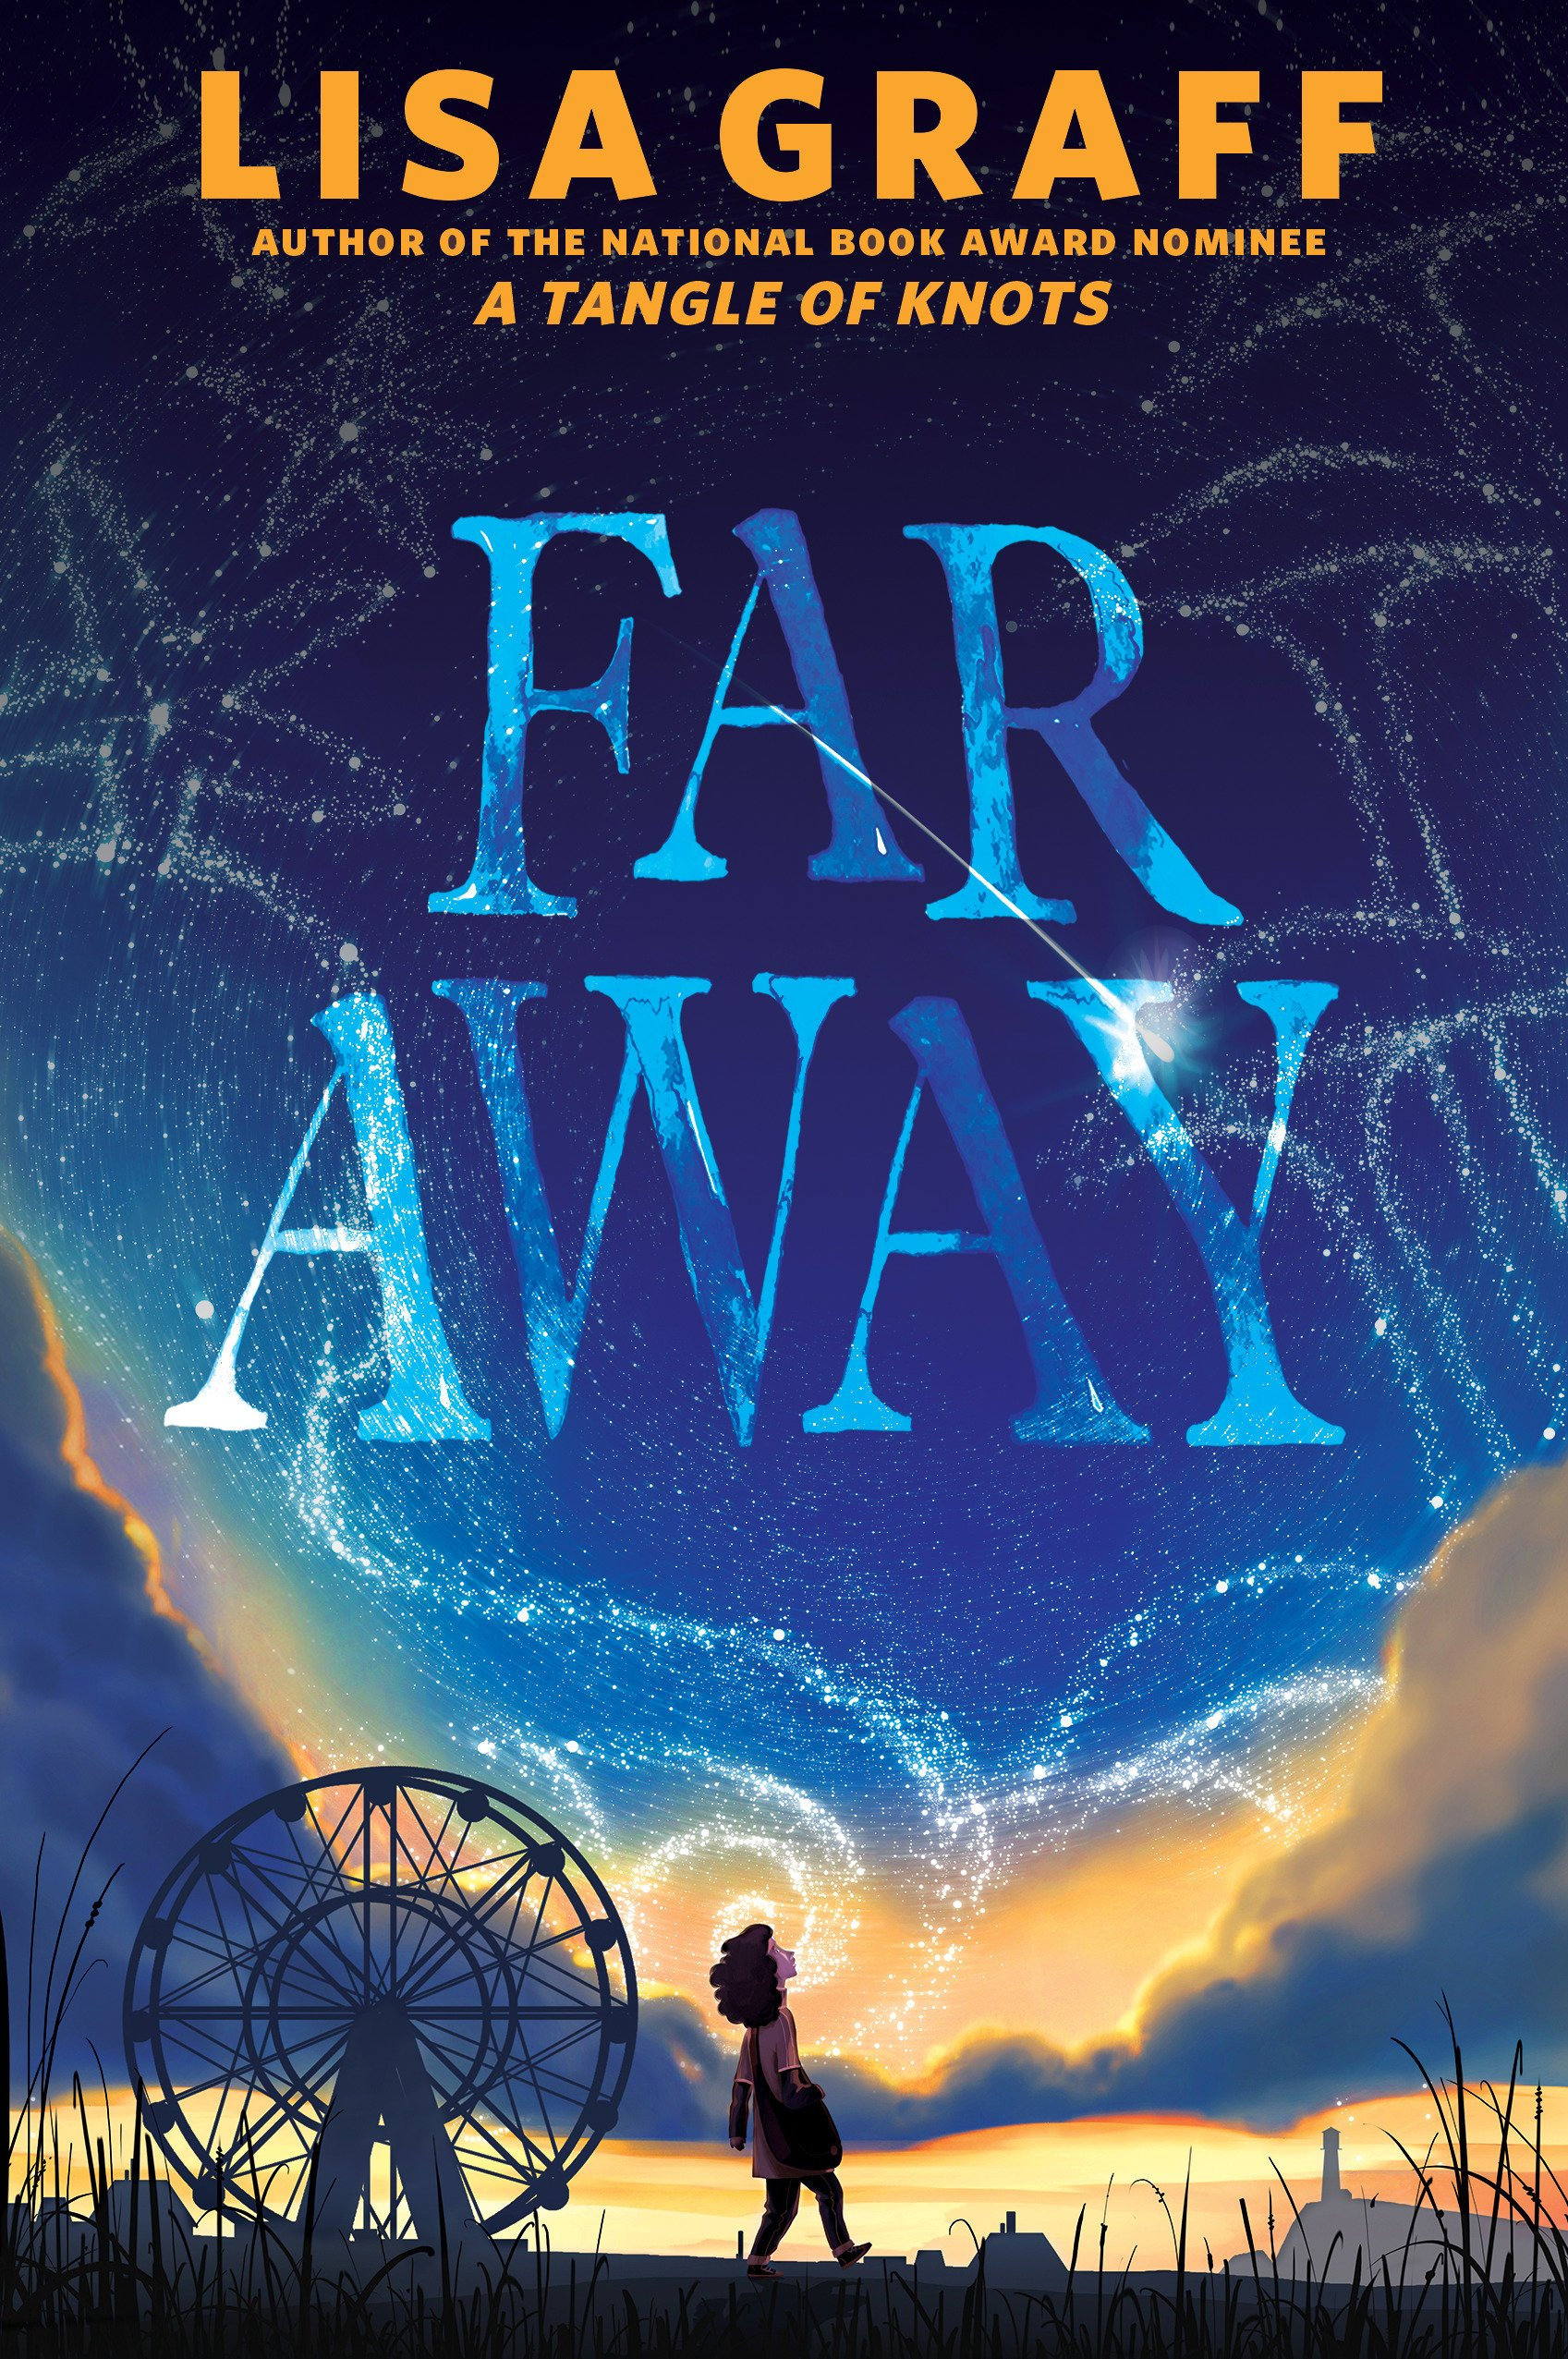 Image result for far away lisa graff cover